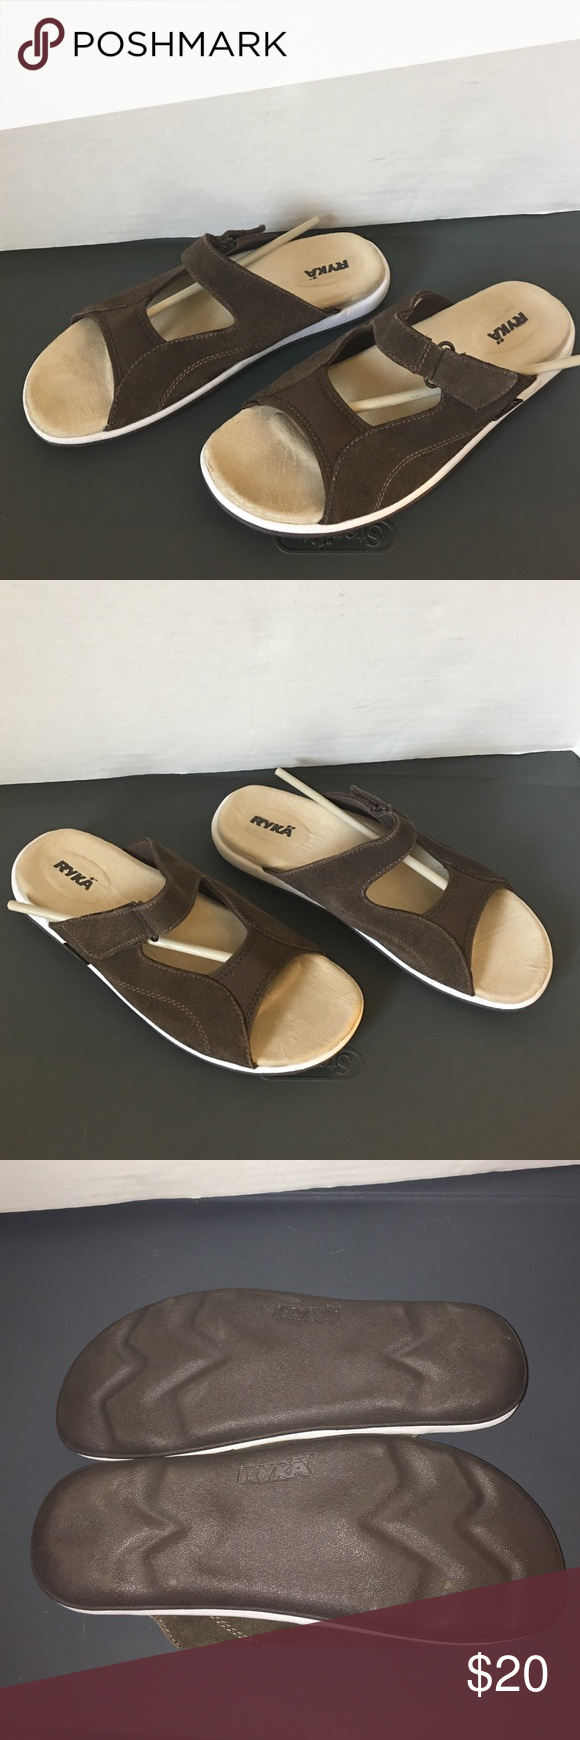 Ryka sandals shoes - Boardwalk Summer Sandals Pre Owned In Great Condition Ryka Sandals Size Smoke And Pet Free House Ryka Shoes Sandals